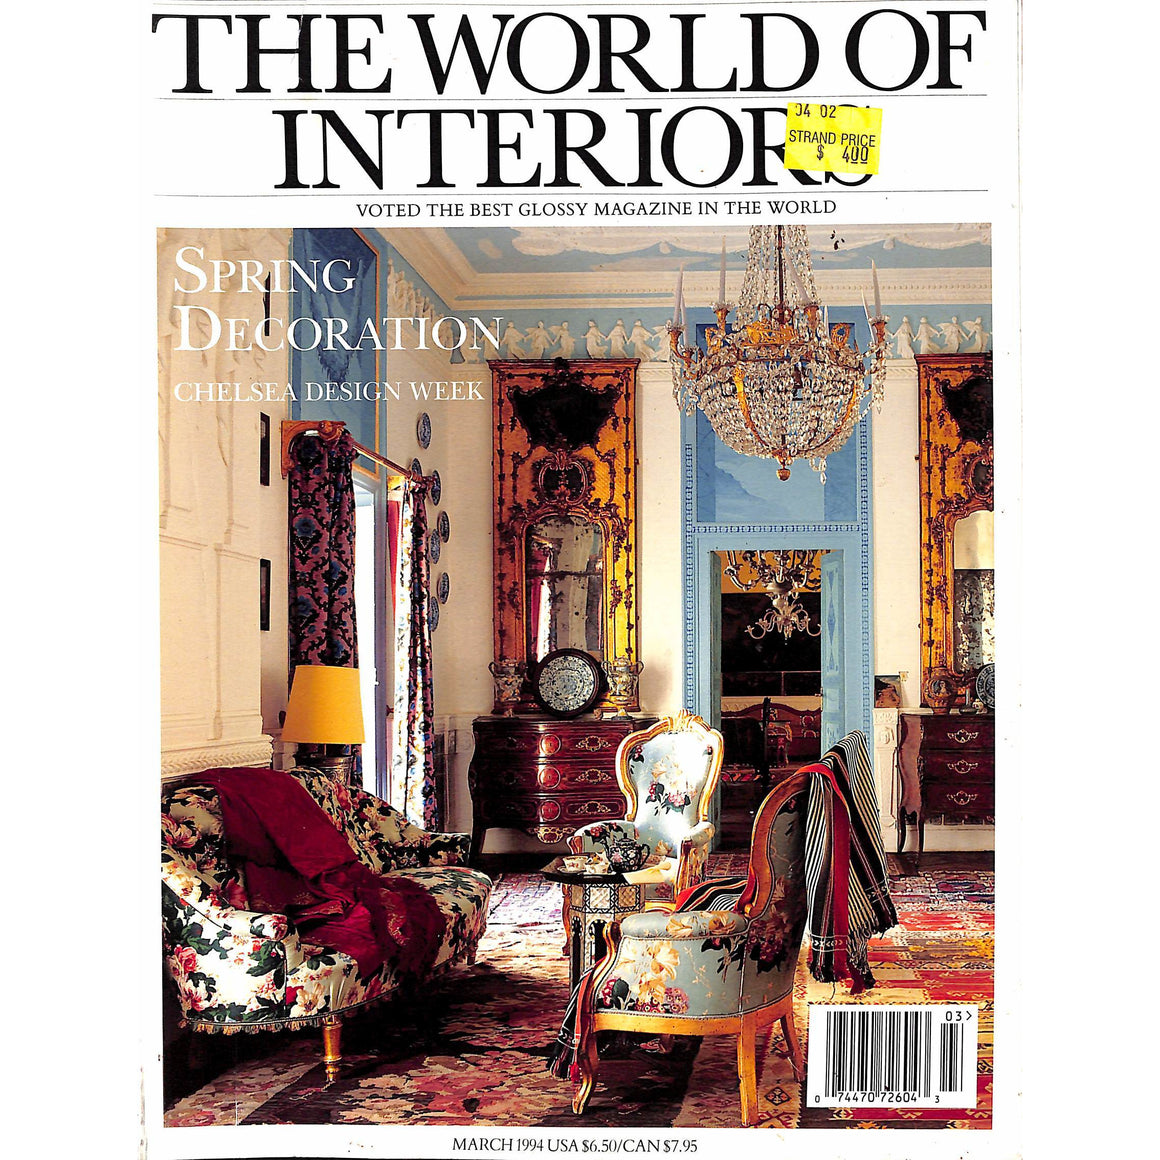 The World of Interiors March 1994